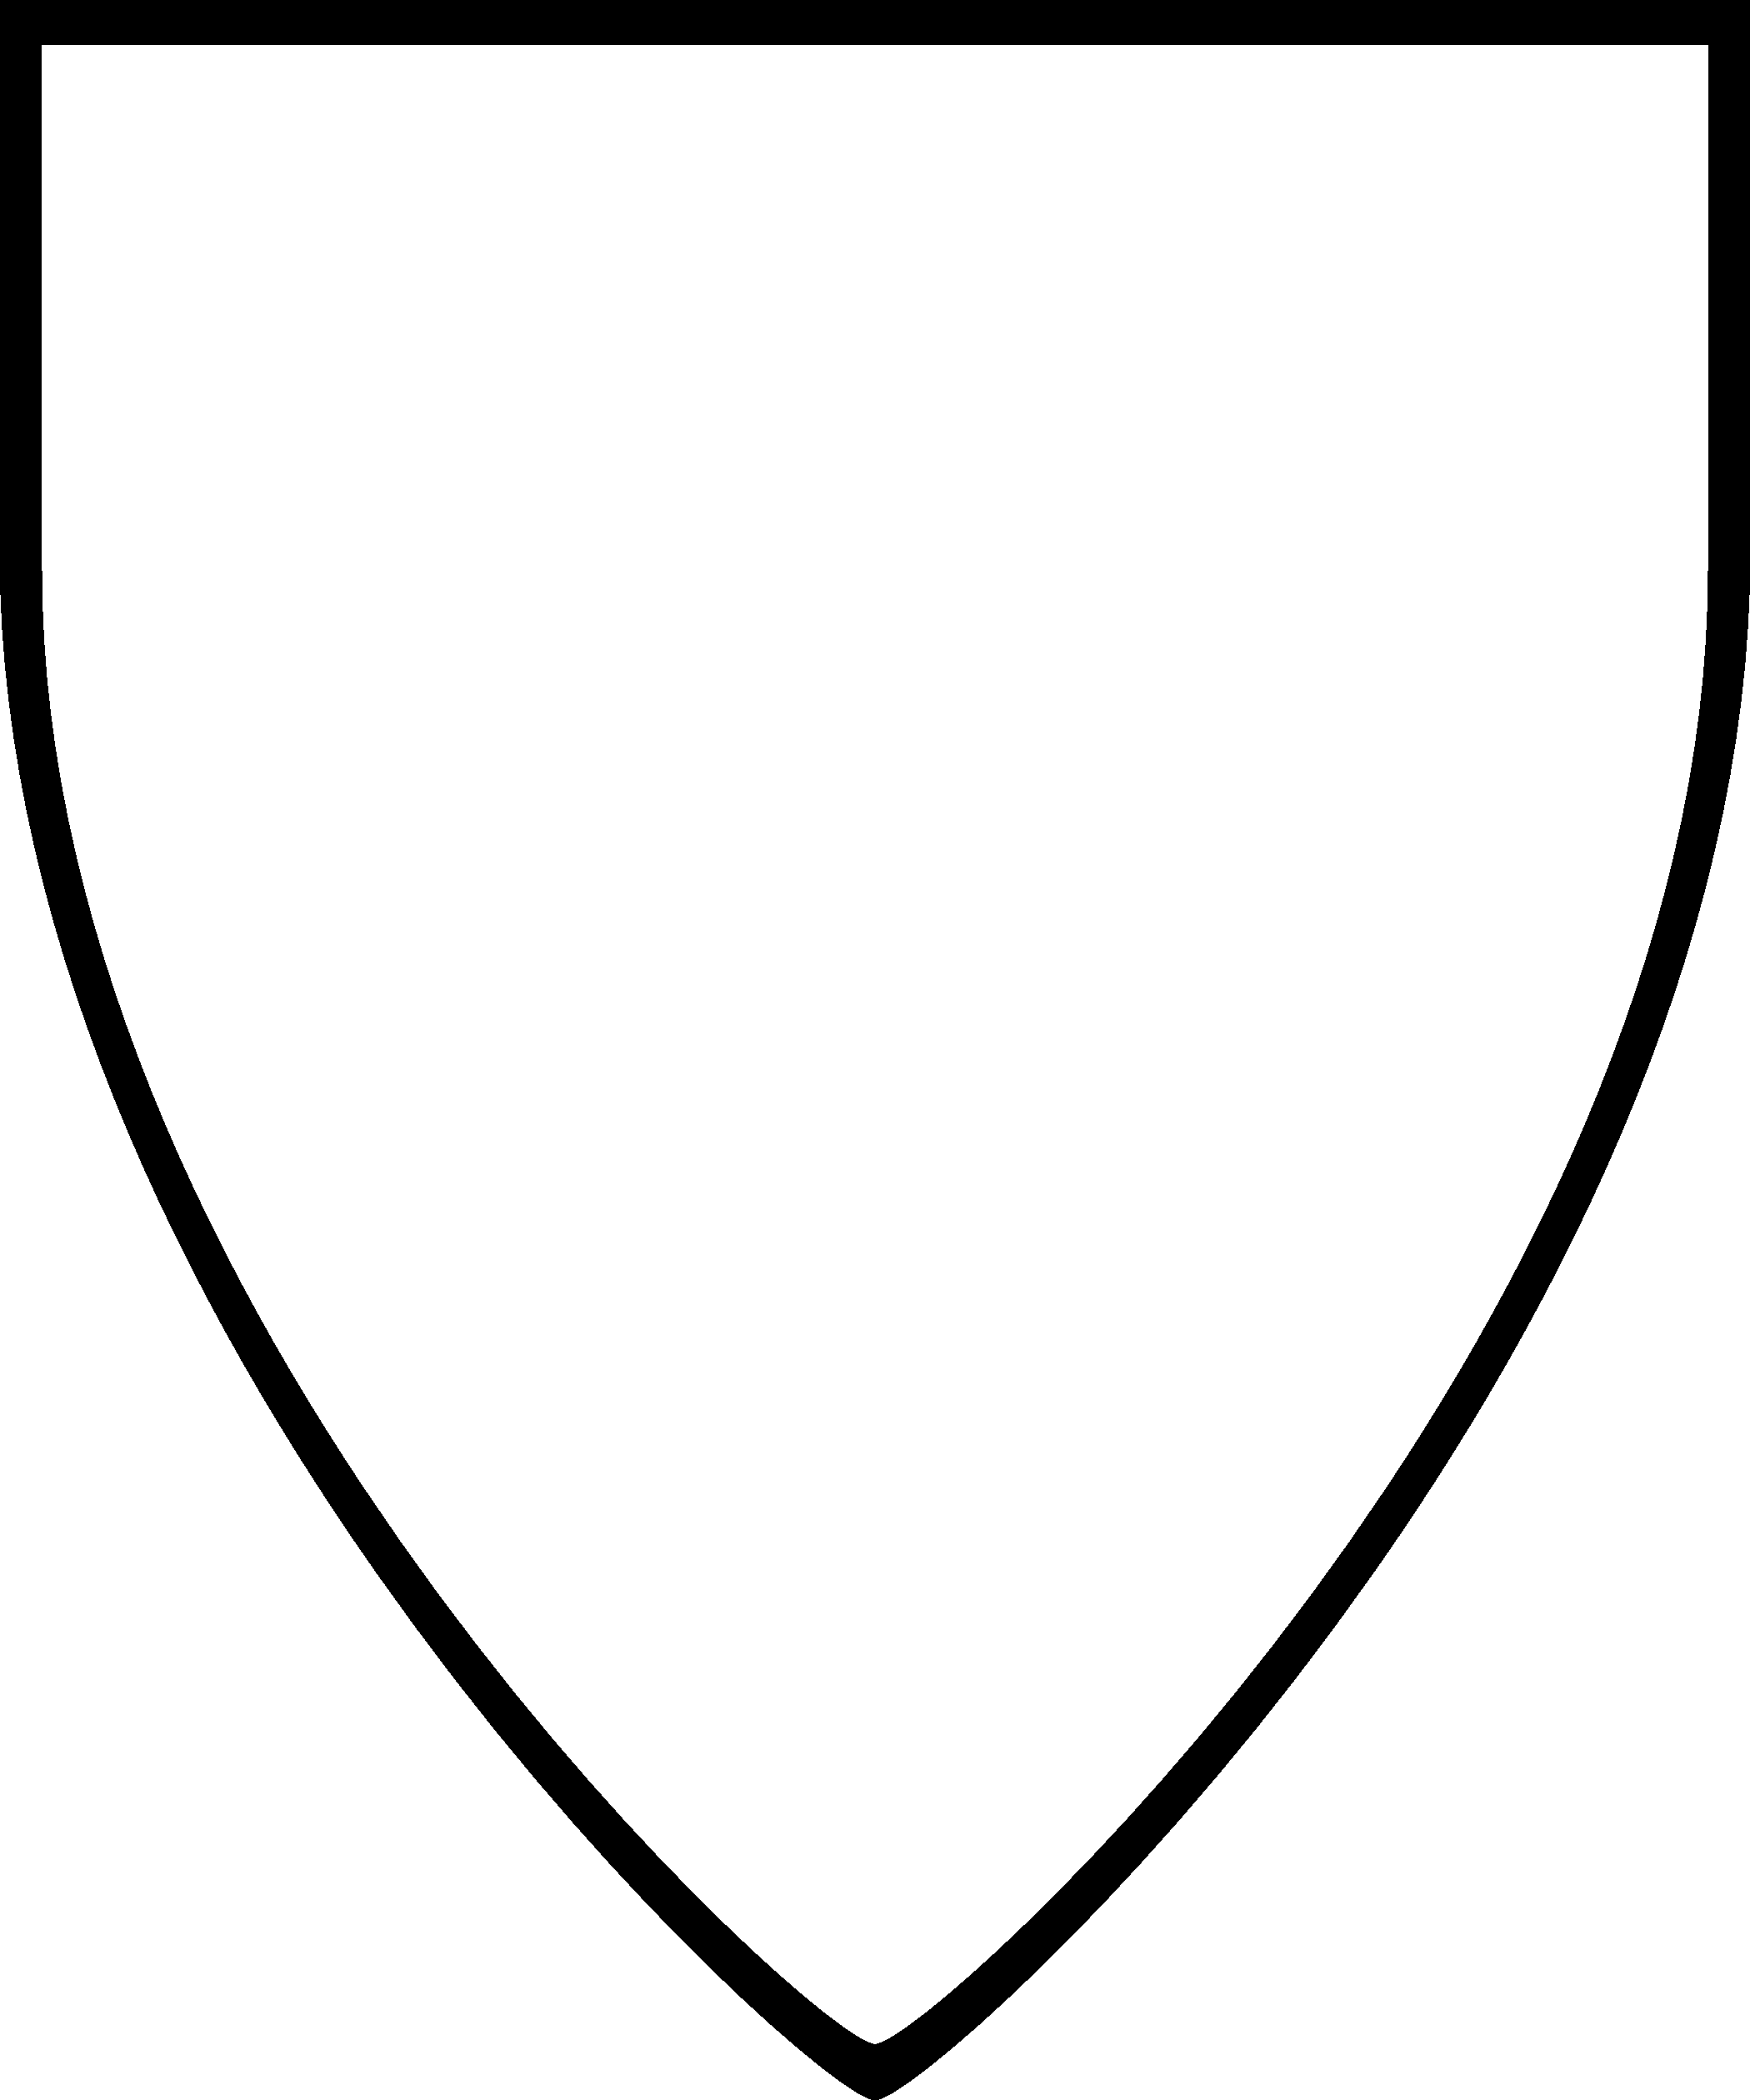 Blank Shield Vector